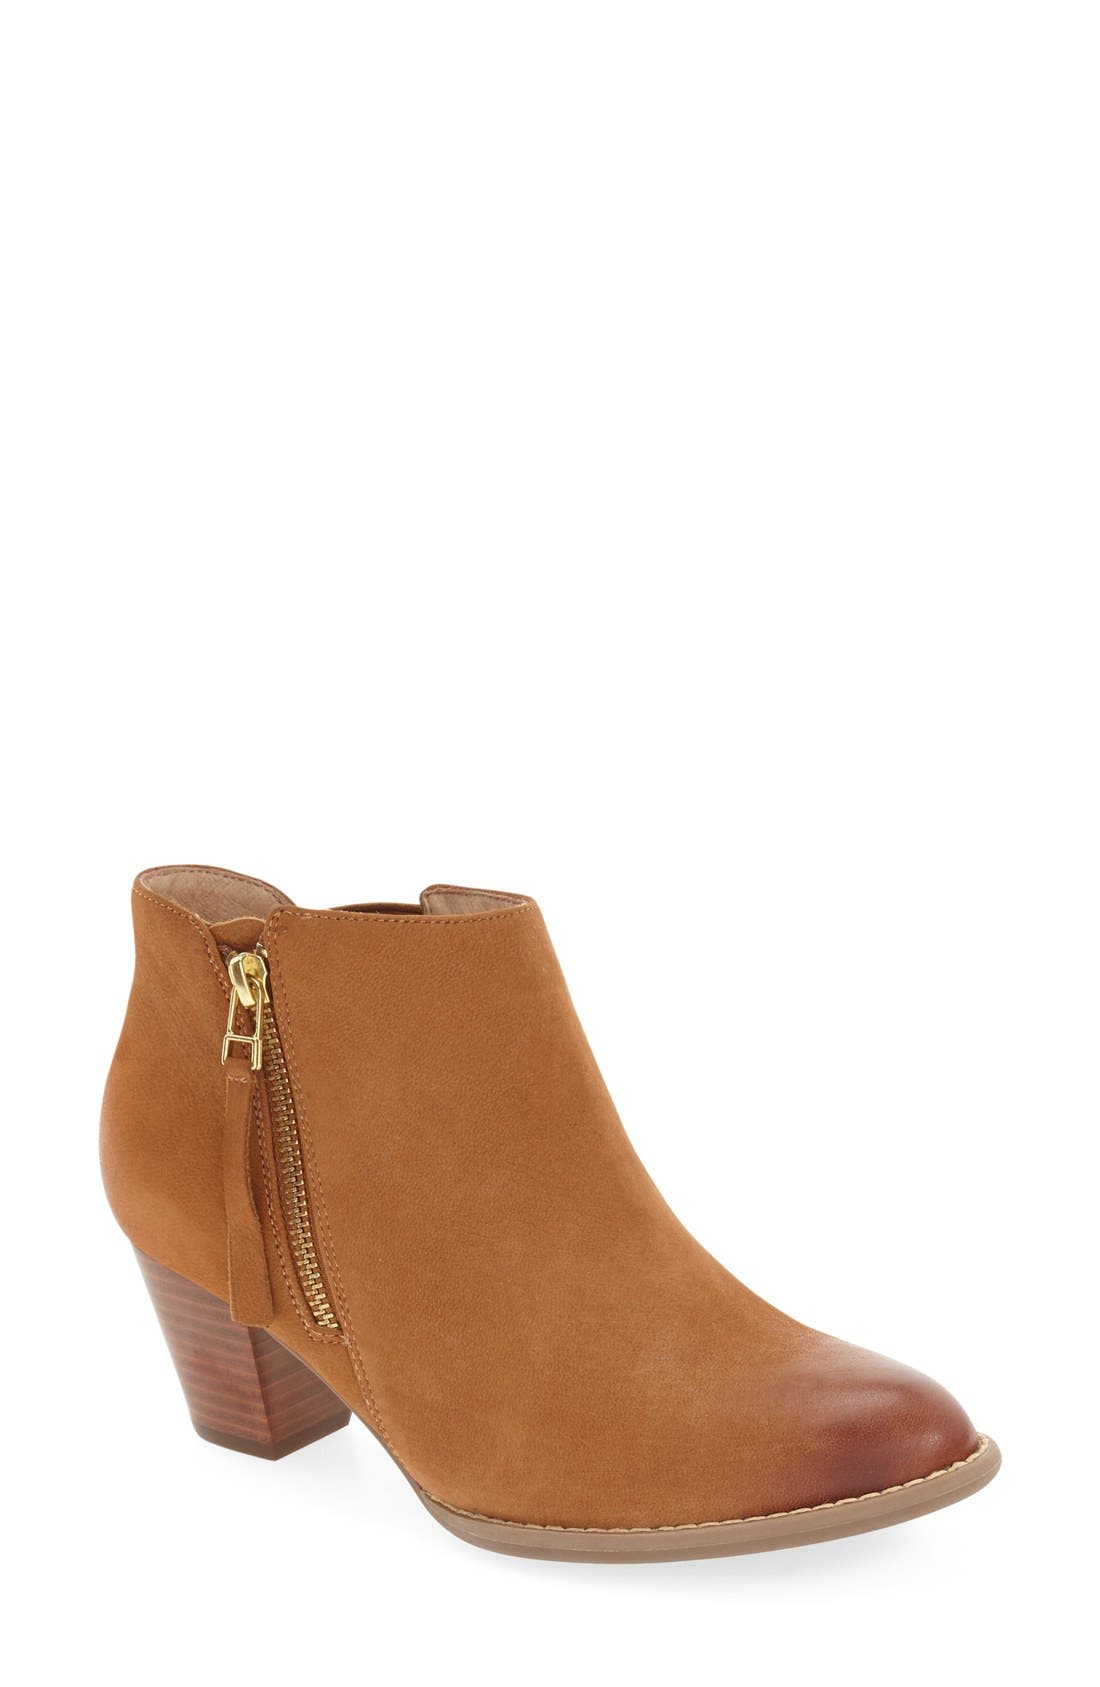 Alternate Image 1 Selected - Vionic 'Sterling' Boot (Women)